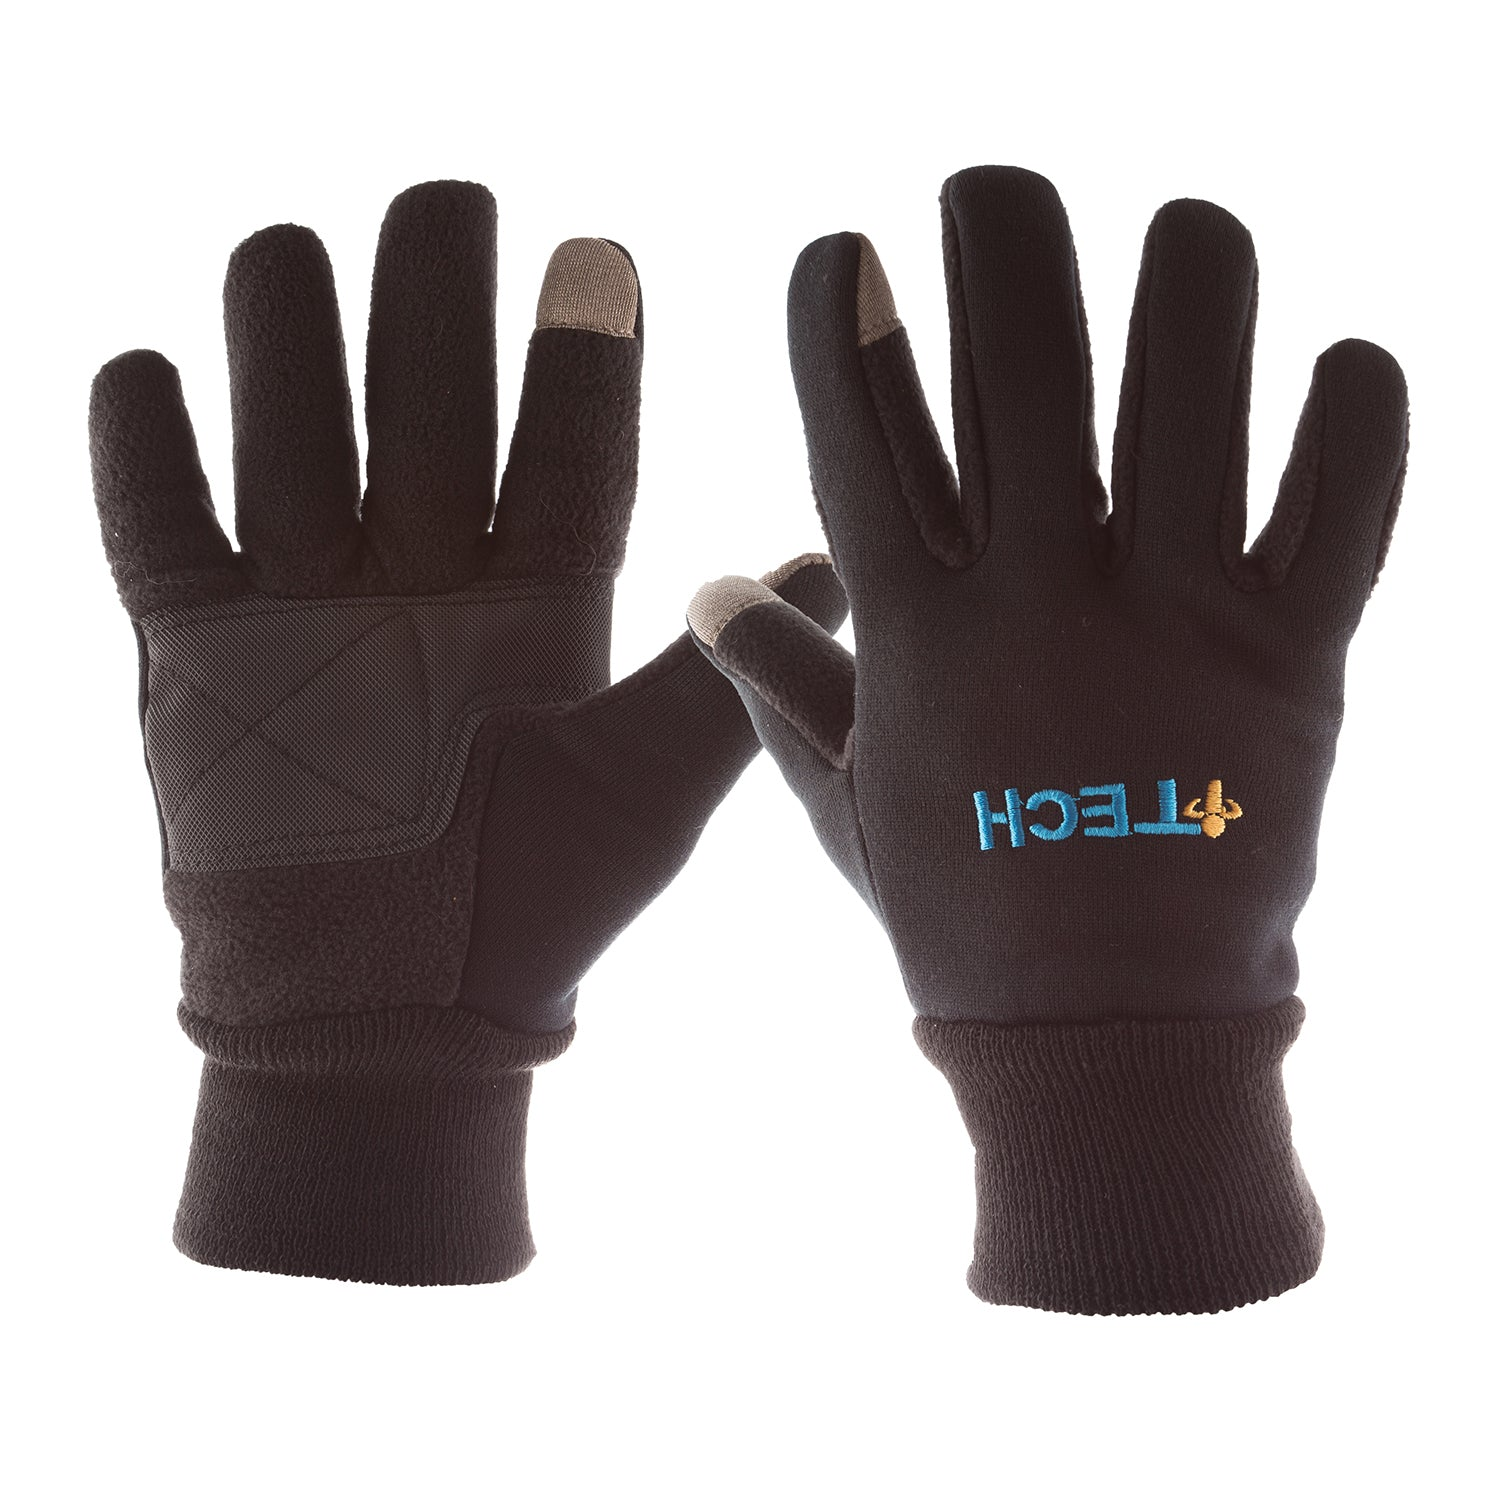 ITECH Winter Touchscreen Gloves are the perfect daily wear work gloves when working outside in the winter and wanting easy access to your smart devices. ITECH gloves allow ease of use for any touchscreen device without requiring you to remove your gloves.